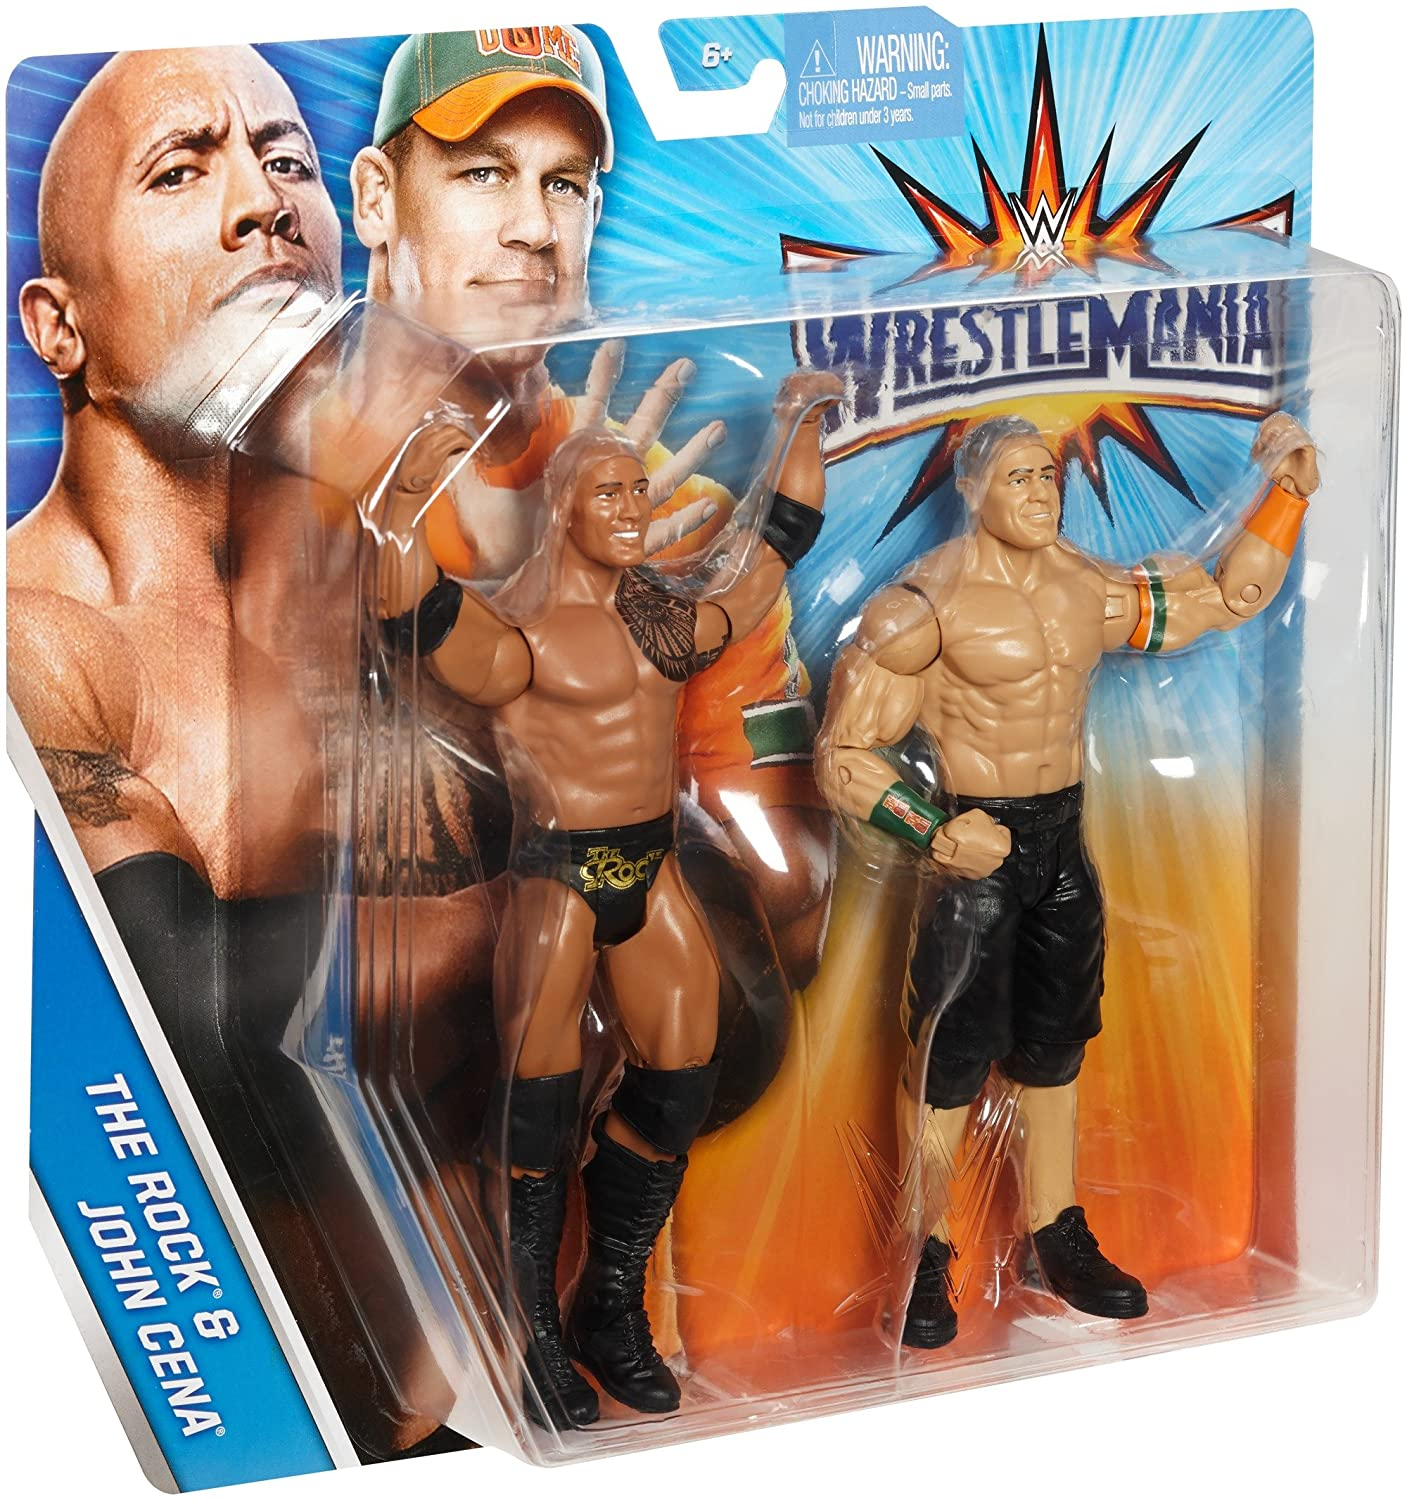 Amazon.com: WWE WrestleMania The Rock & John Cena Figures, 2 Pack ...